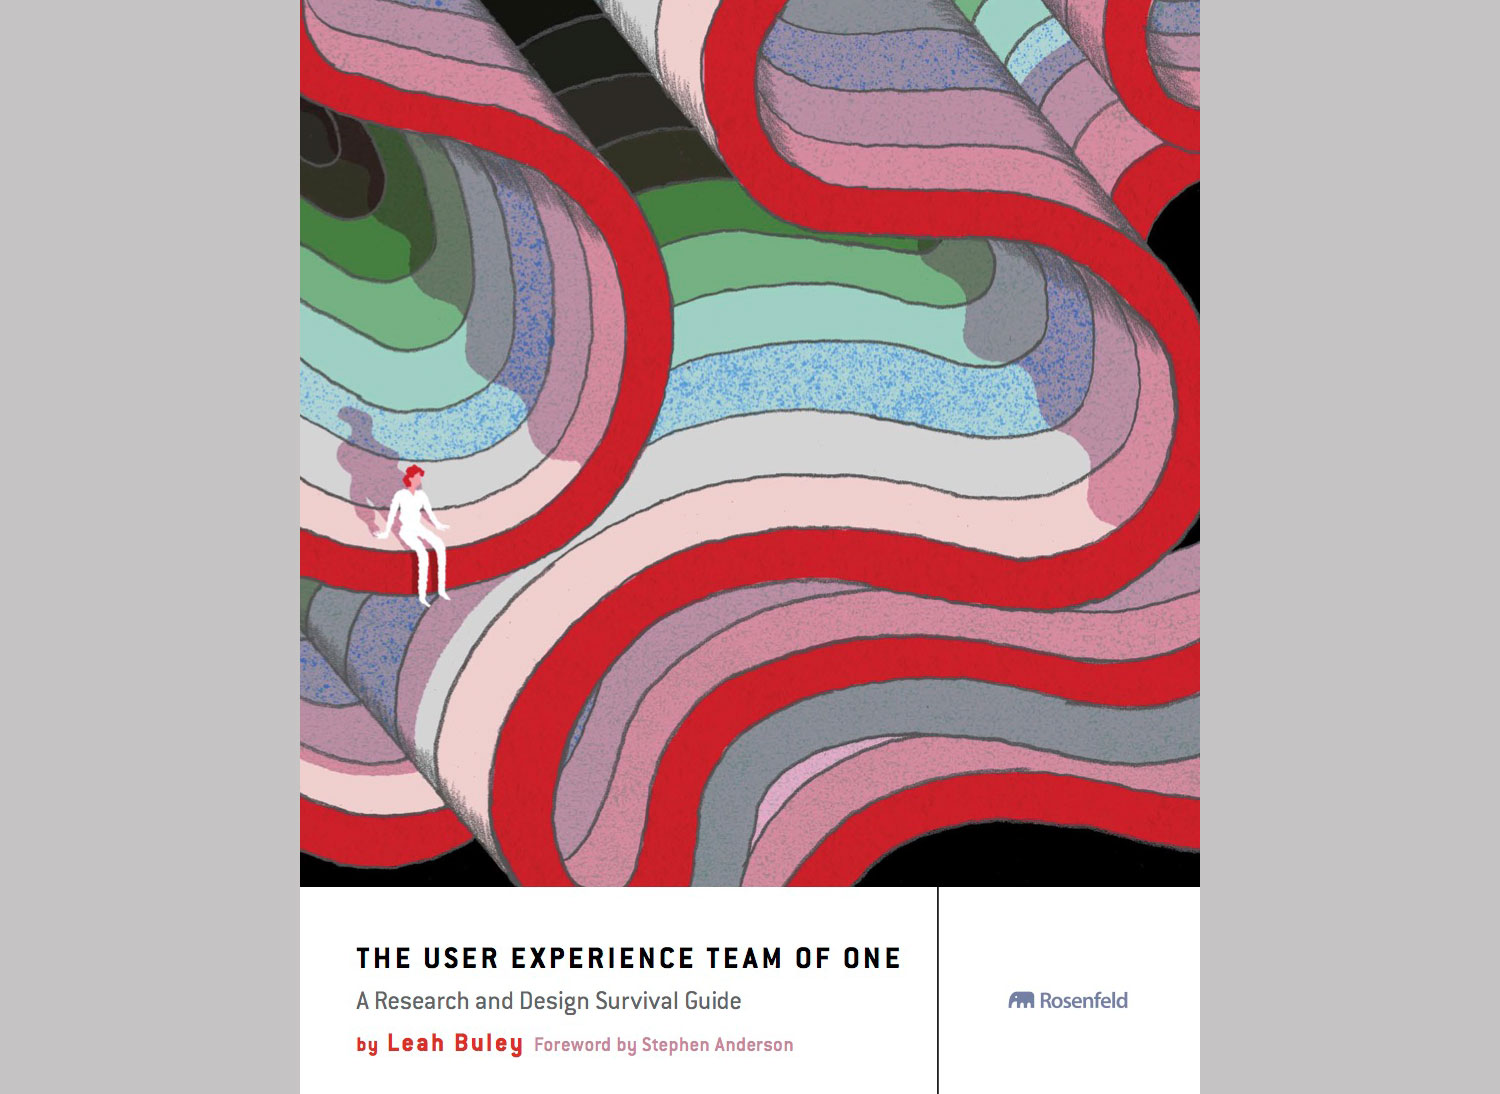 The User Experience Team of One